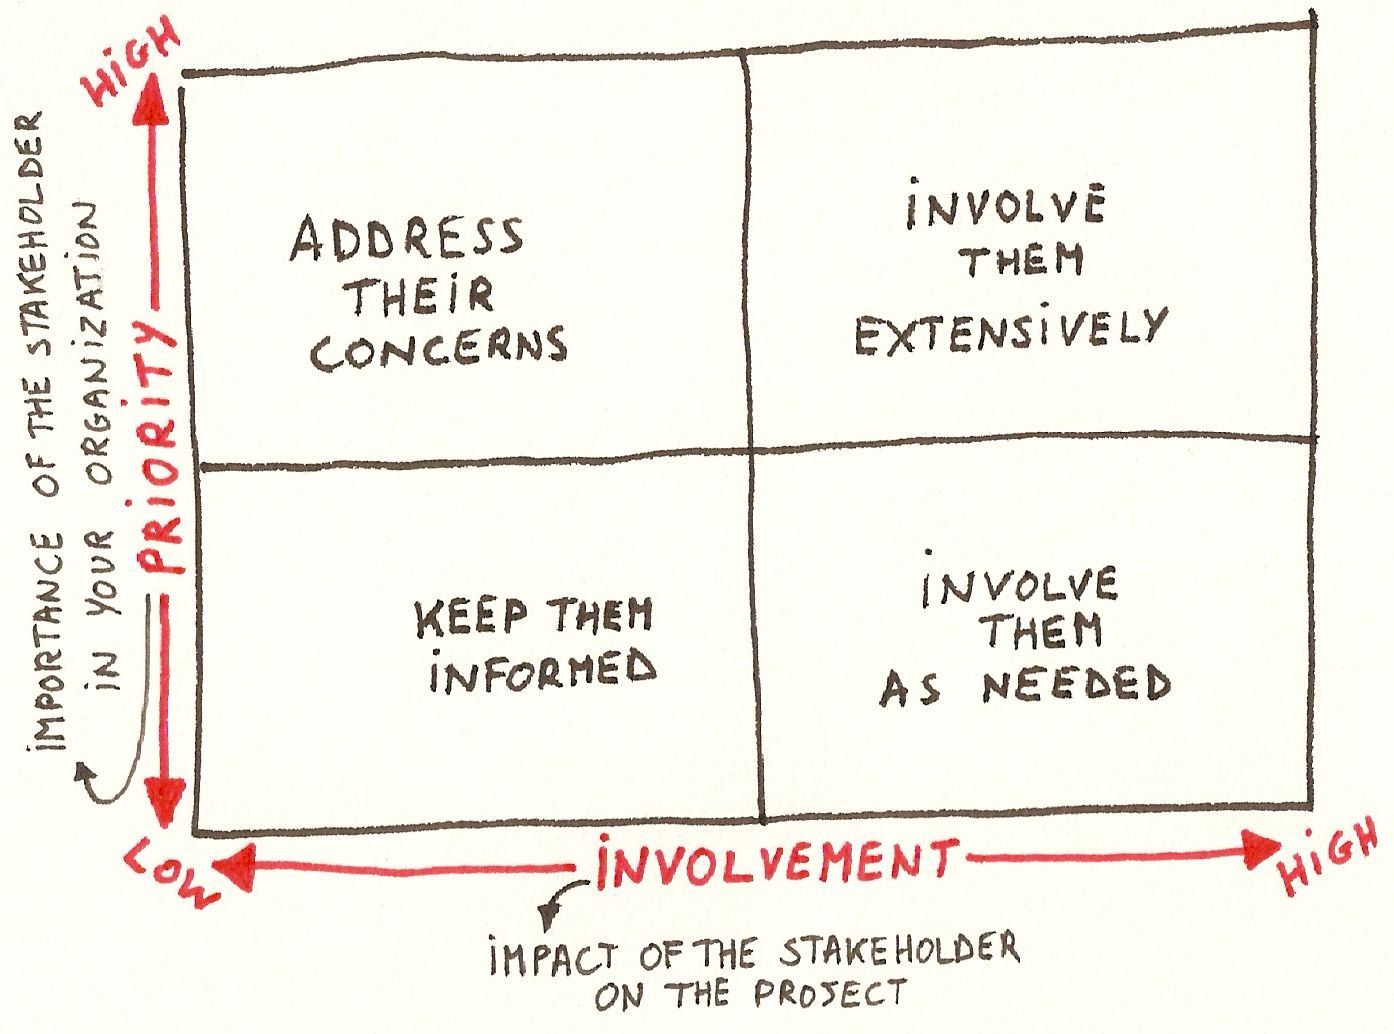 Example of a stakeholder map (Source: Interaction-Design.org / Luc Galoppin)